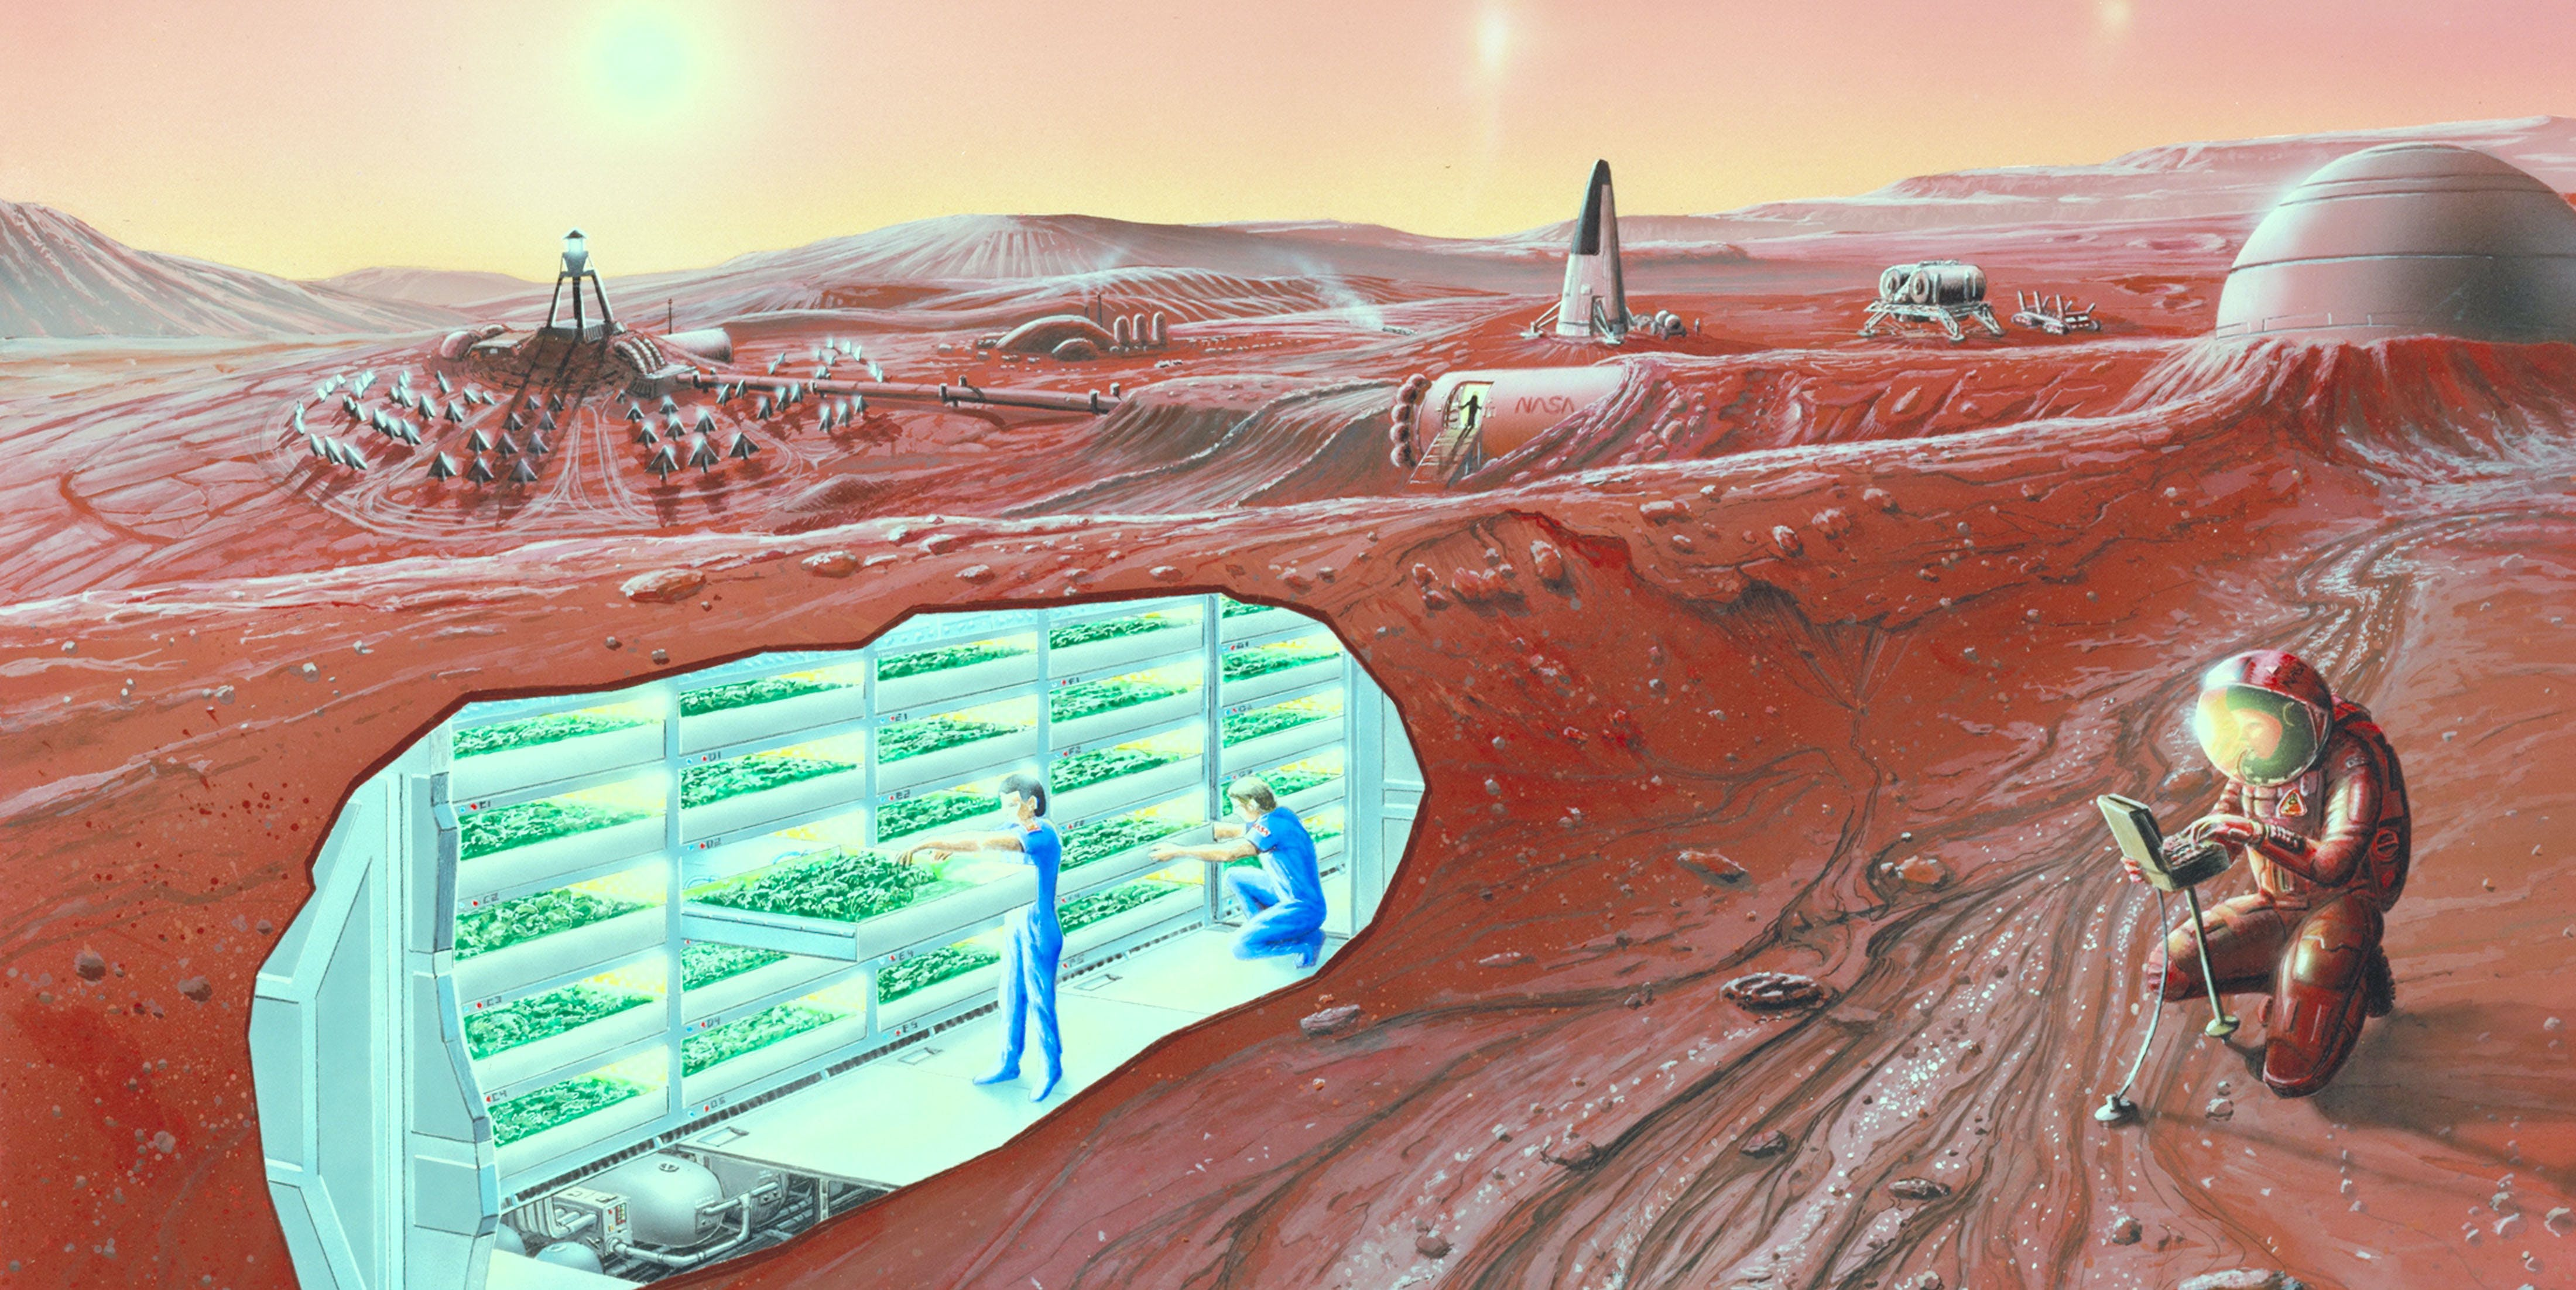 An artist's conception of a human Mars base, with a cutaway revealing an interior horticultural area